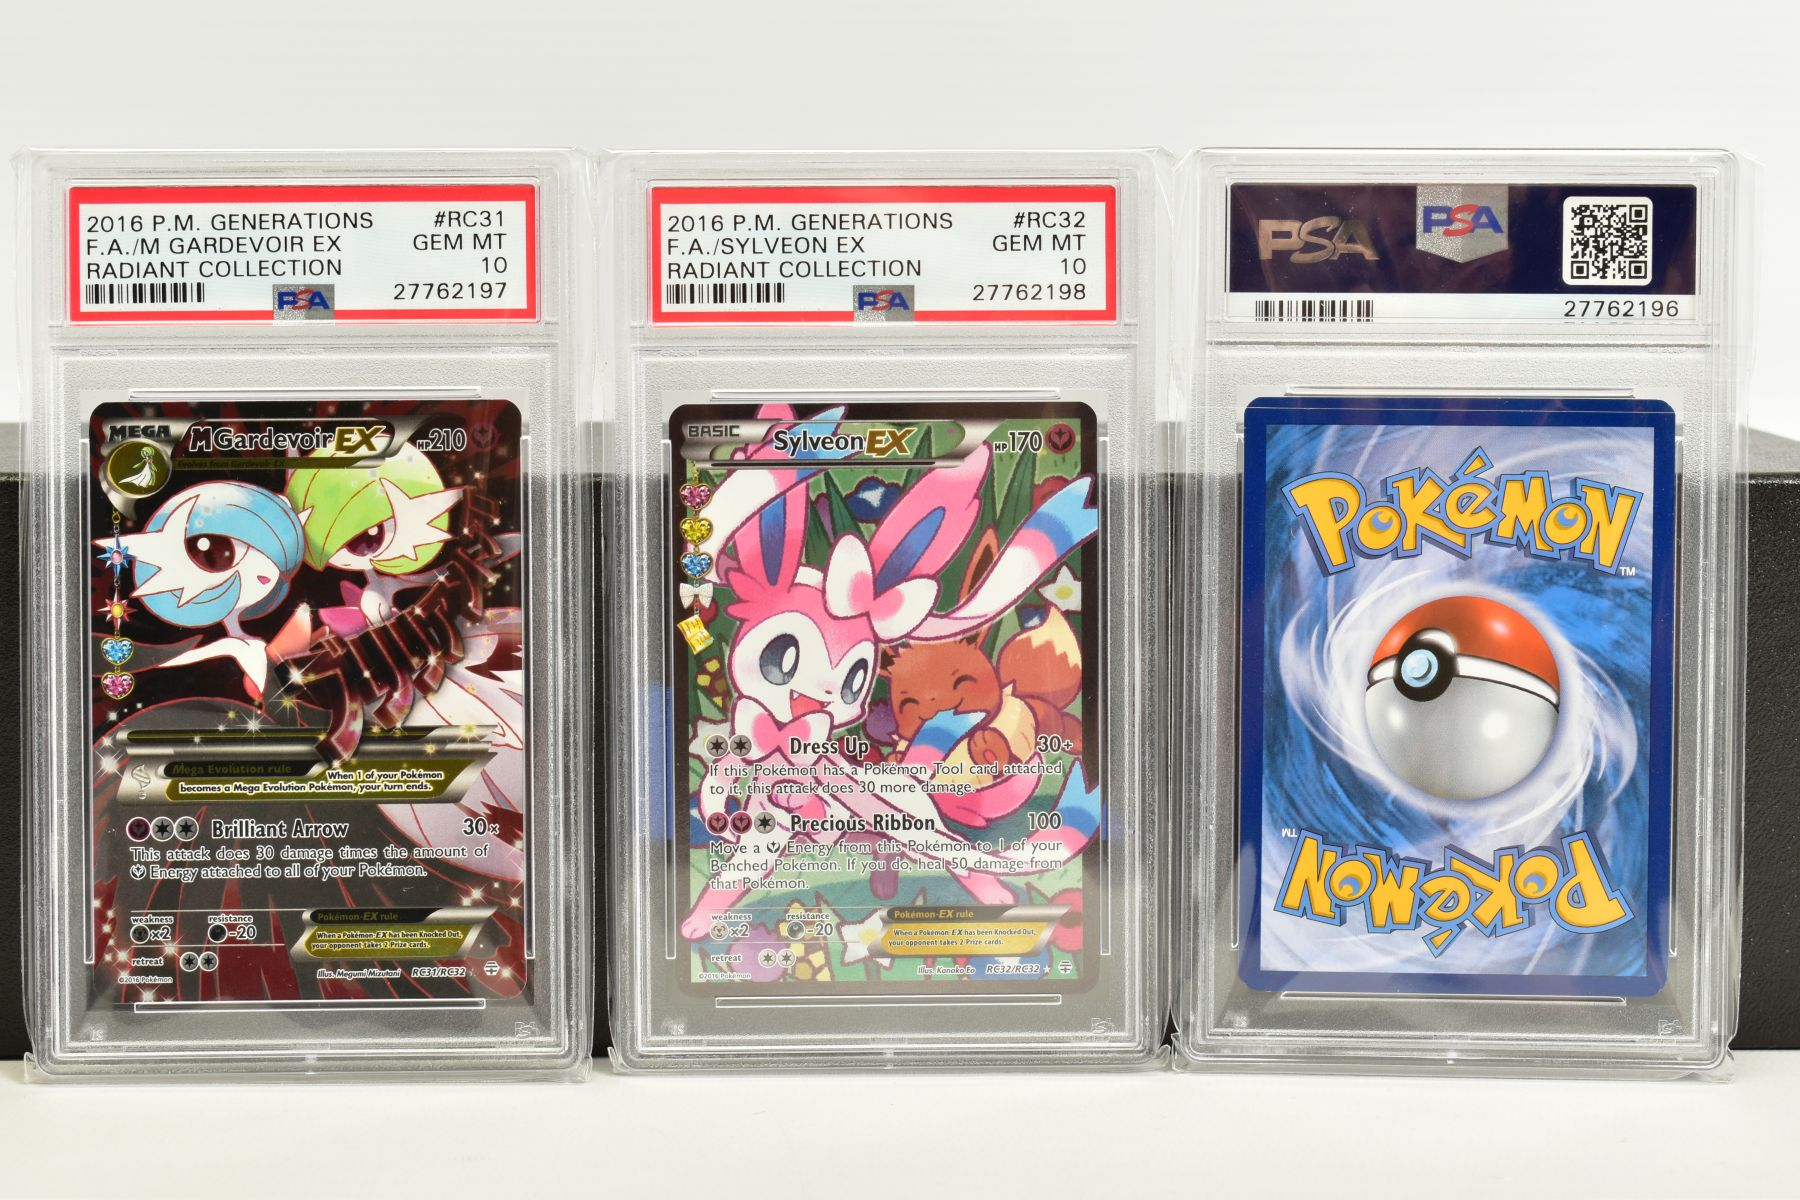 A QUANTITY OF PSA GRADED POKEMON CARDS, assorted cards from the Southern Islands Promos, Build-A- - Image 12 of 12